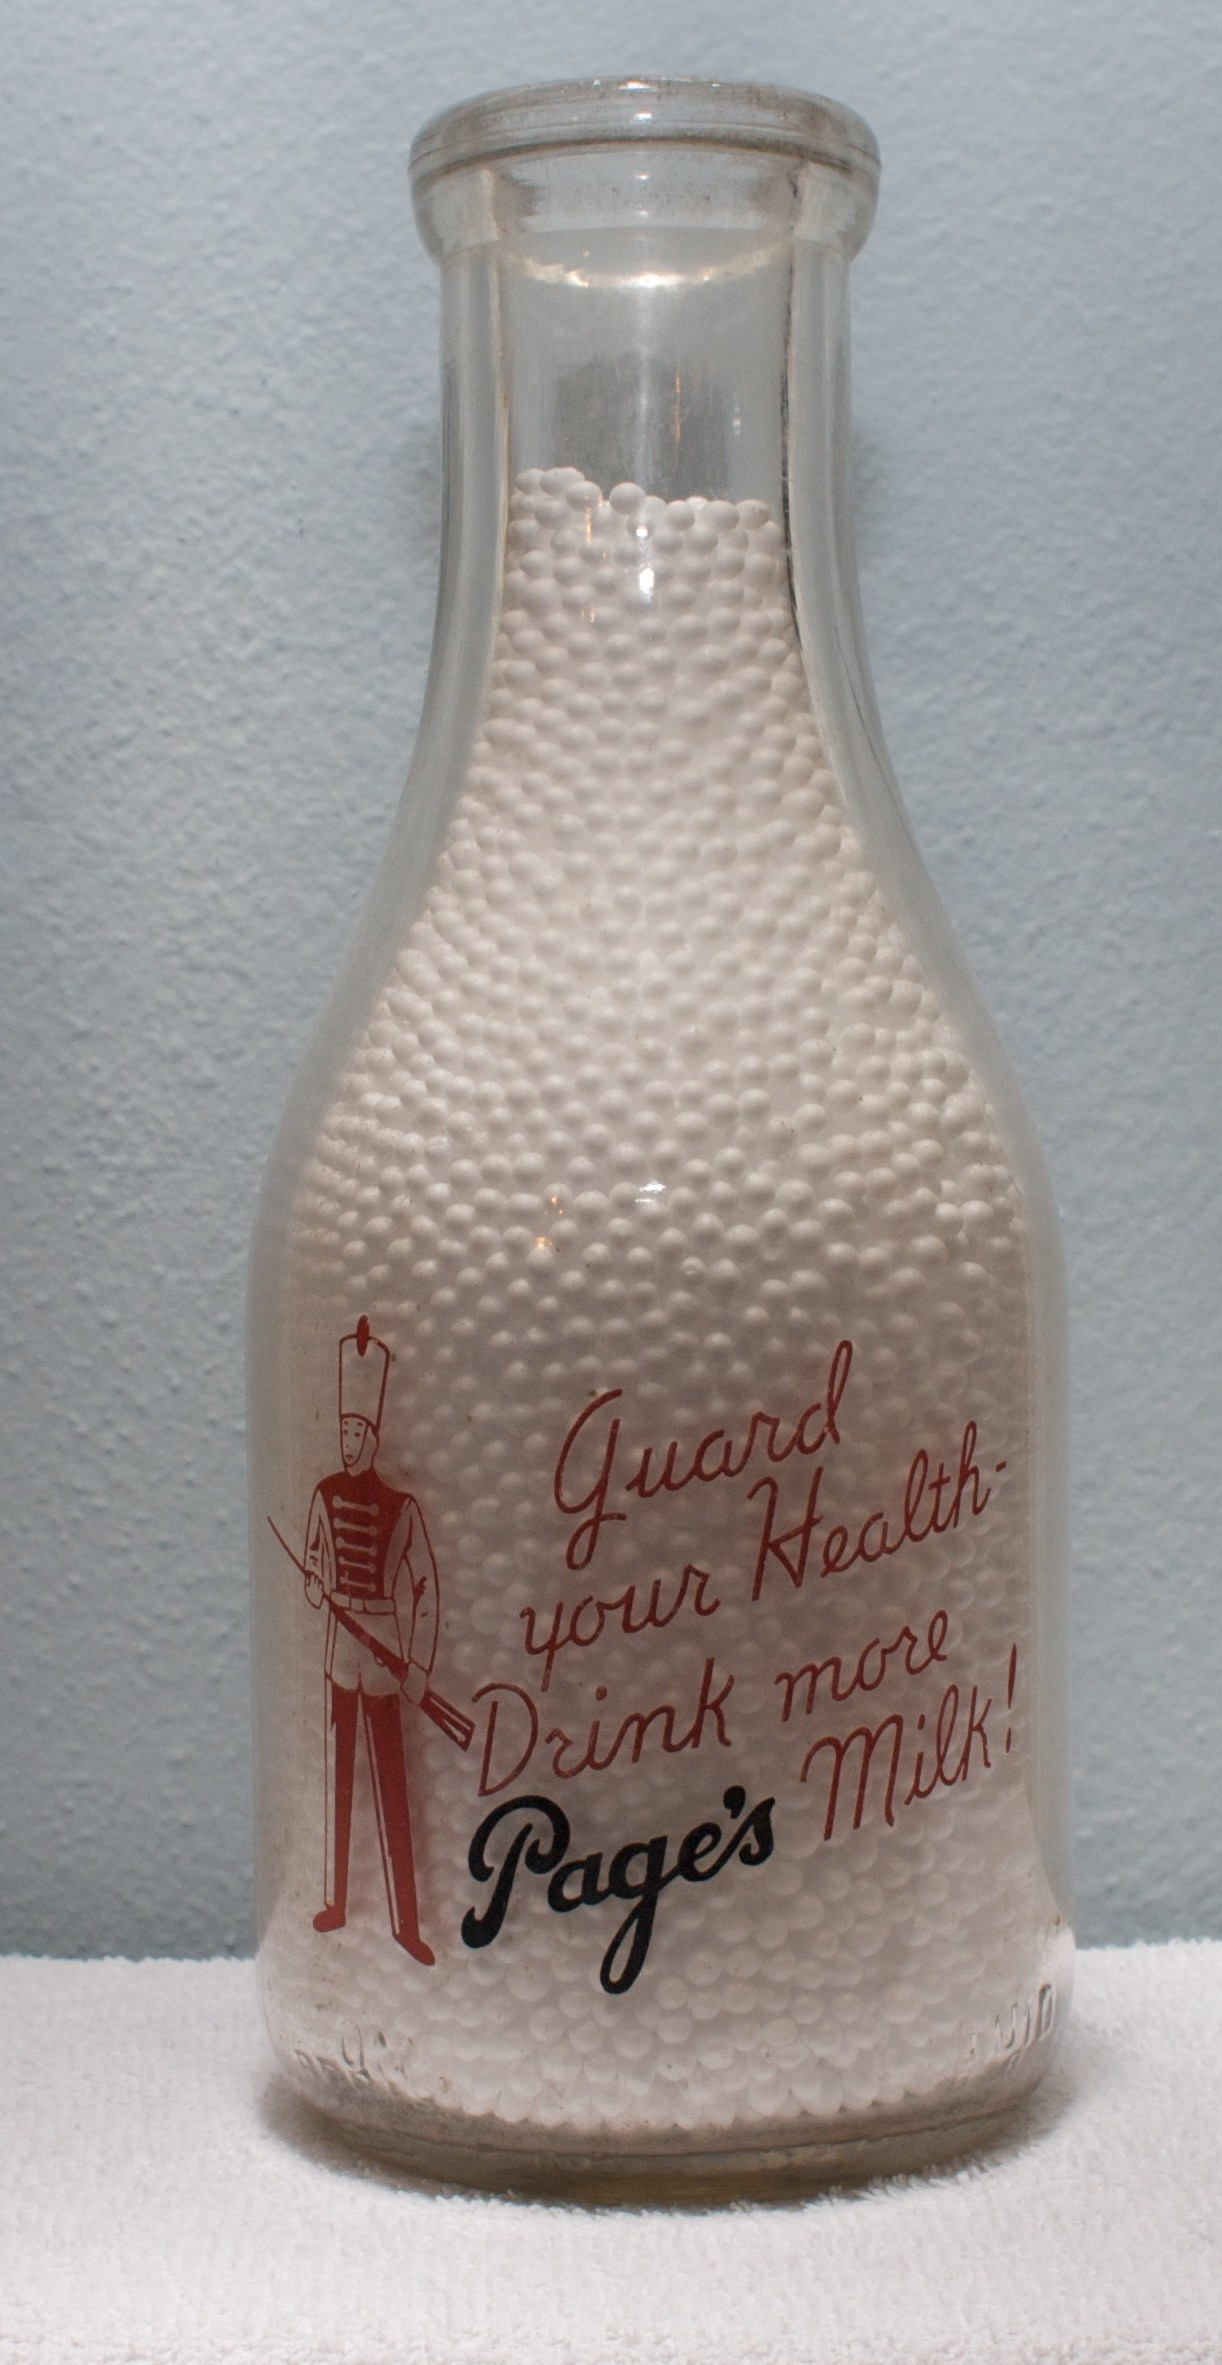 Limited Edition Pages Quart Milk Bottle 1940s Guard Your Health Drink More Page\'s Milk